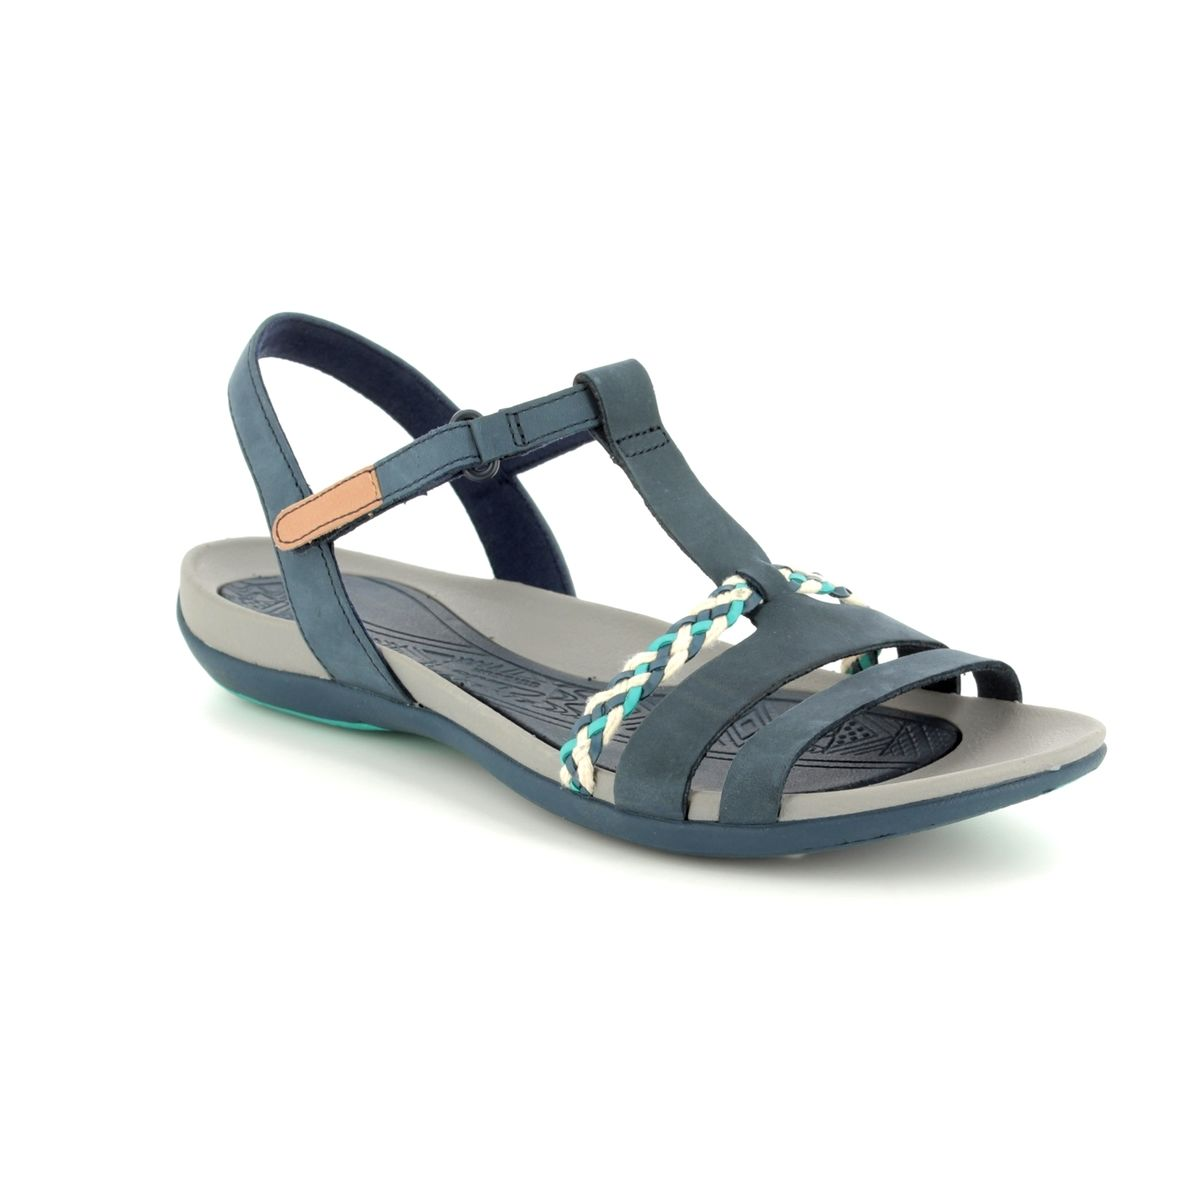 238944d Tealite Grace at Begg Shoes & Bags